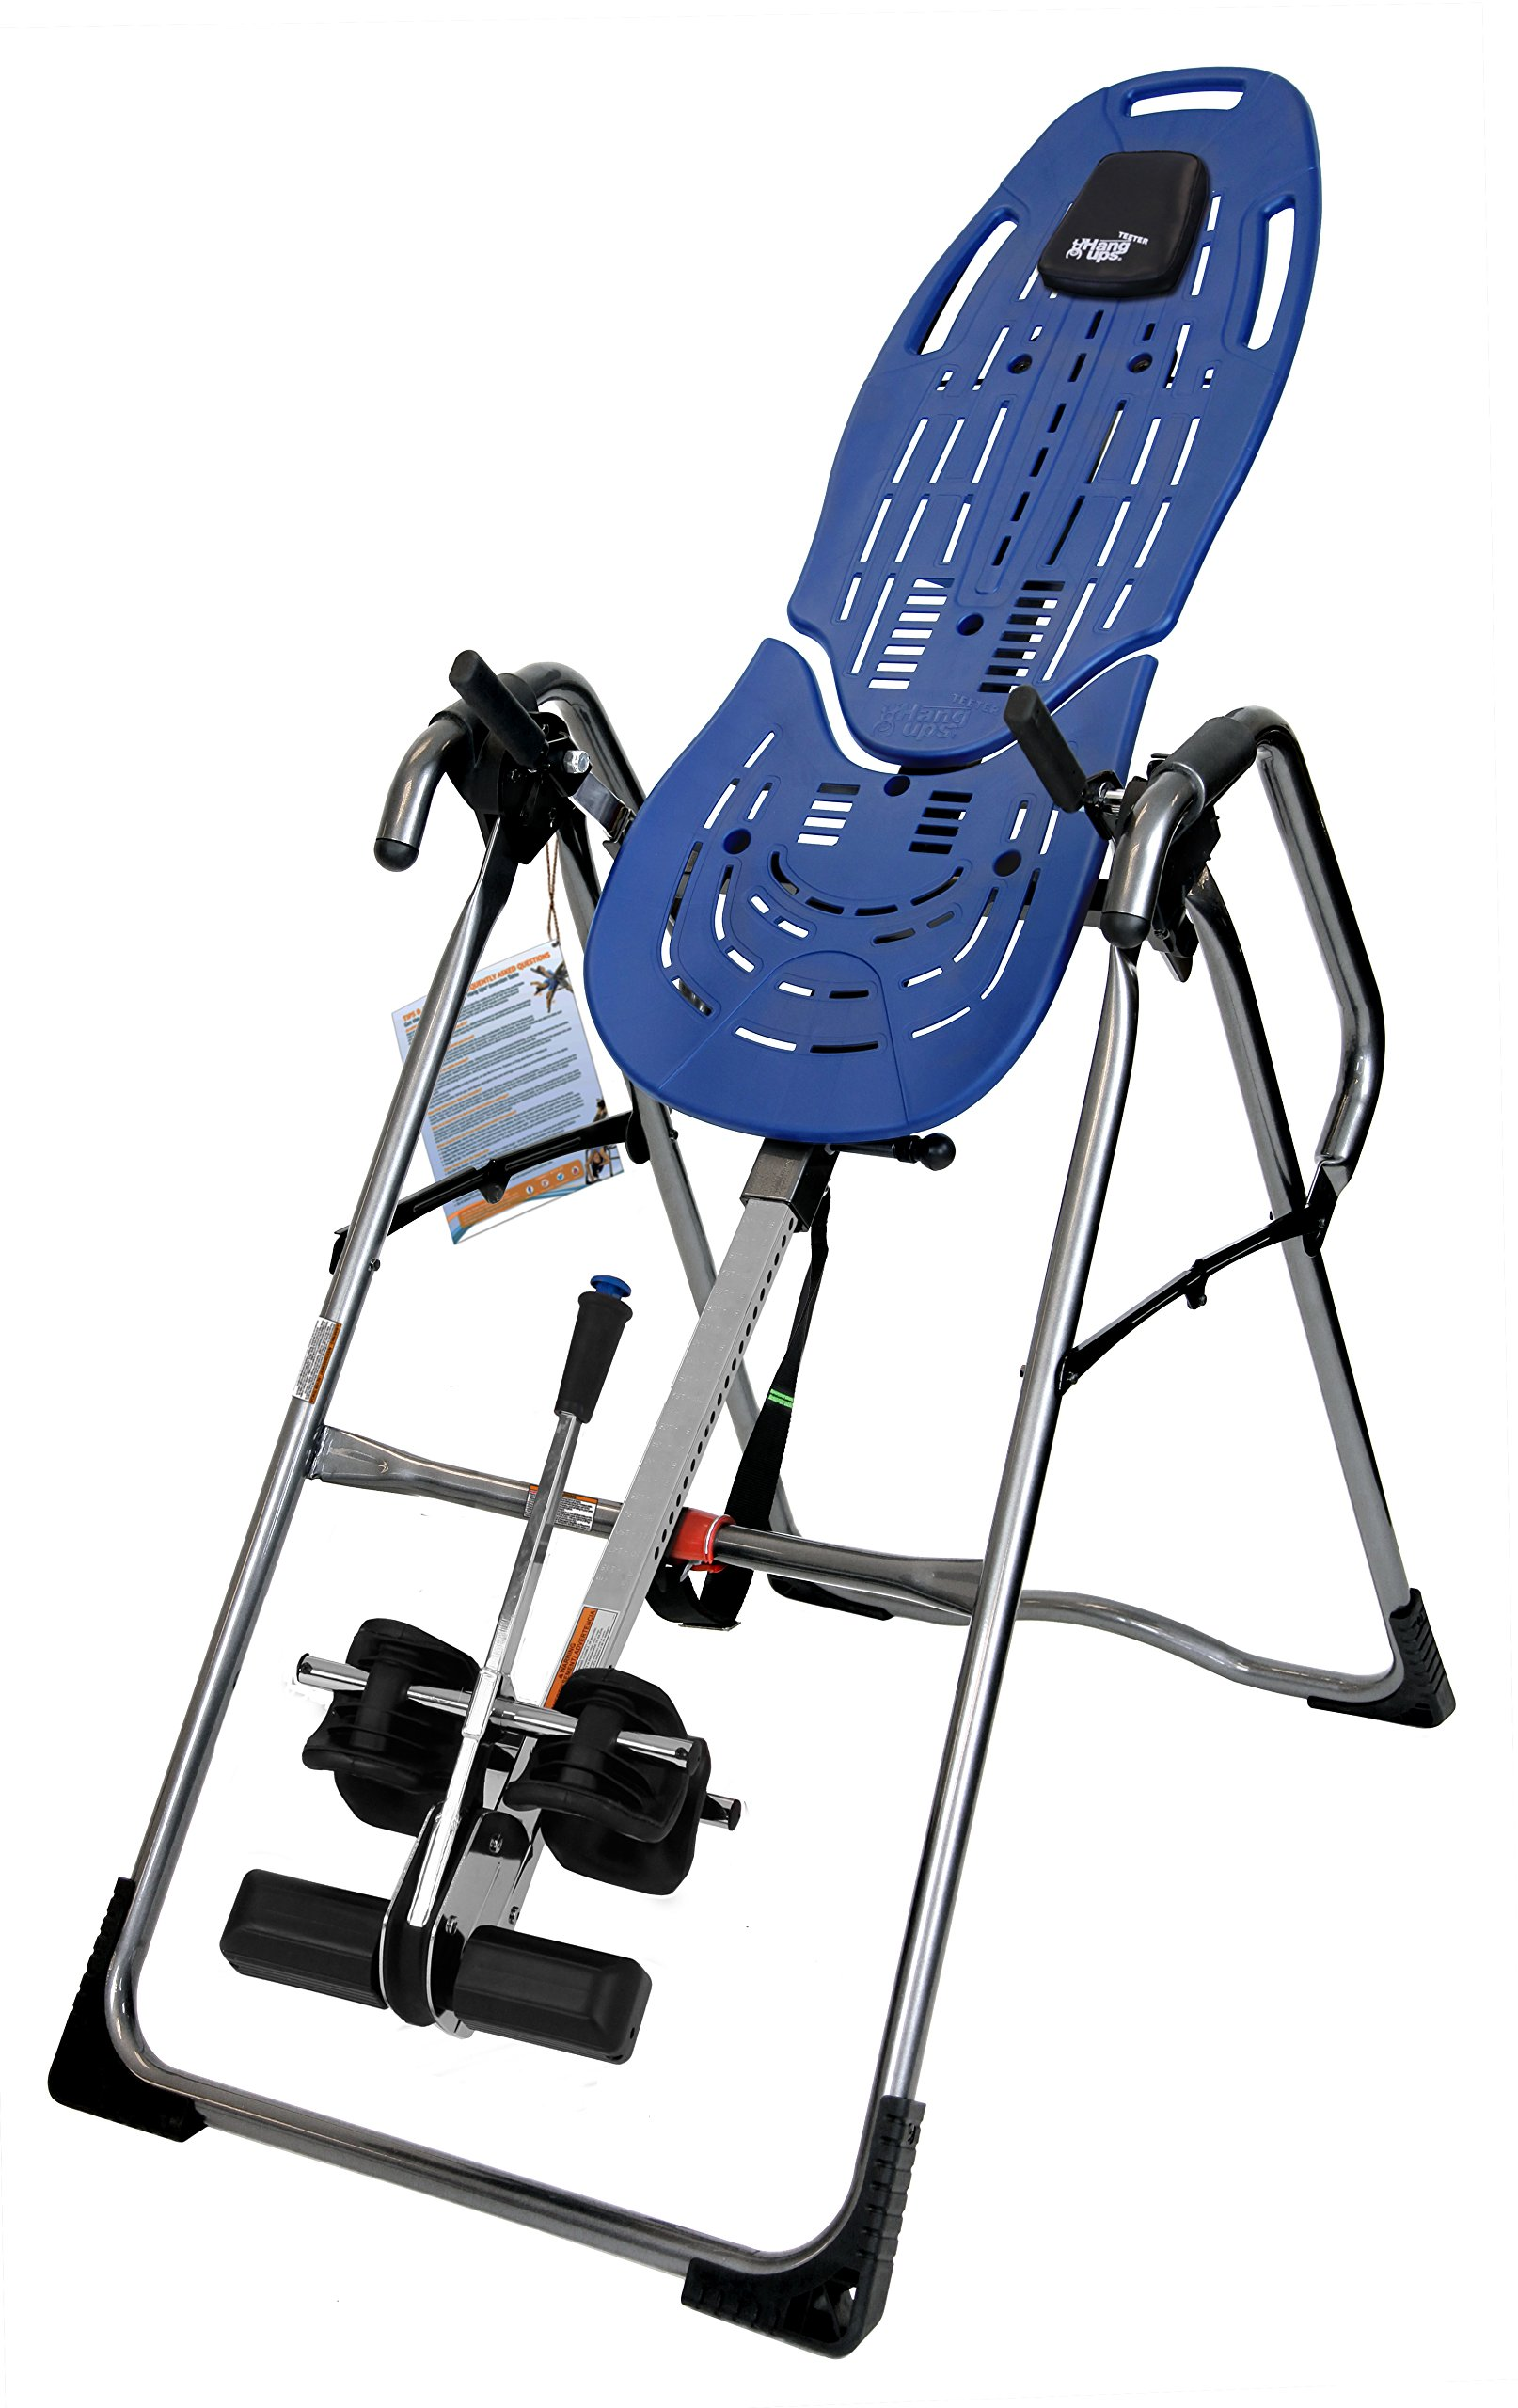 Teeter EP-970 Ltd Inversion Table with Back Pain Relief Kit, Blue/Titanium by Teeter